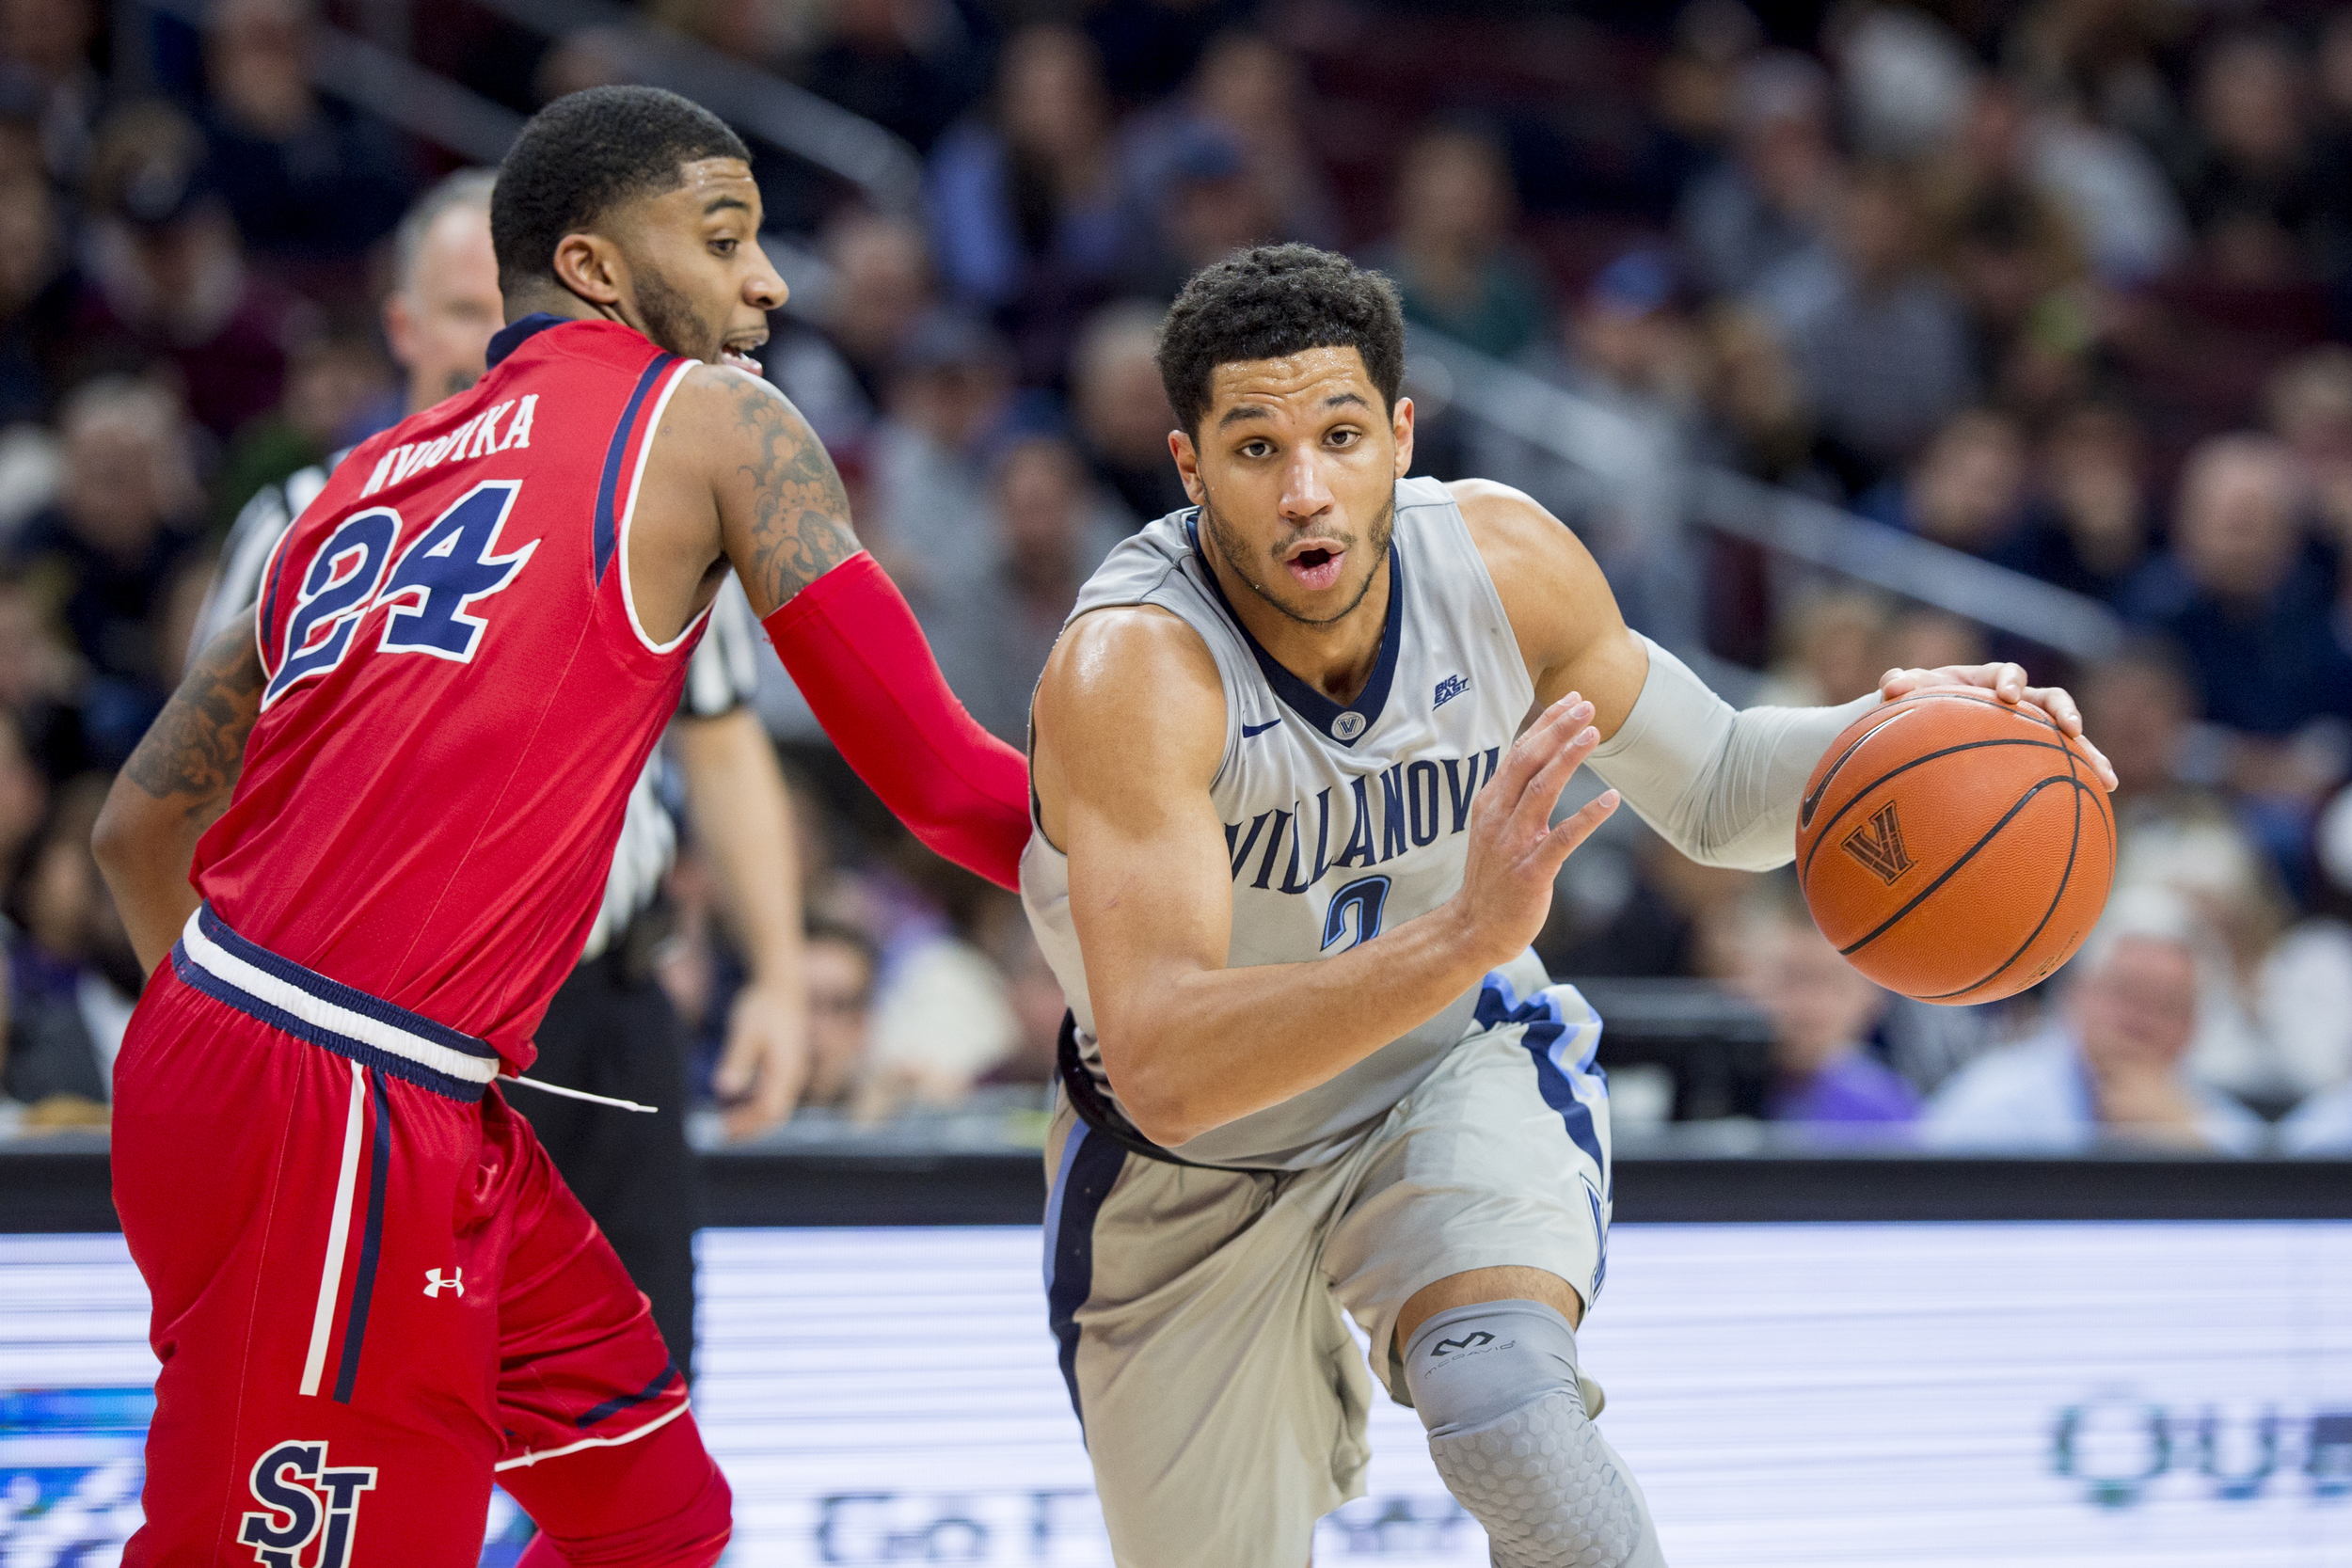 13 February 2016: Villanova Wildcats guard Josh Hart (3) charges into the lane during the NCAA basketball game between the St. John's Red Storm and the Villanova Wildcats played at the Wells Fargo Center in Philadelphia, PA. (Photo by Gavin Baker/Icon Sportswire)